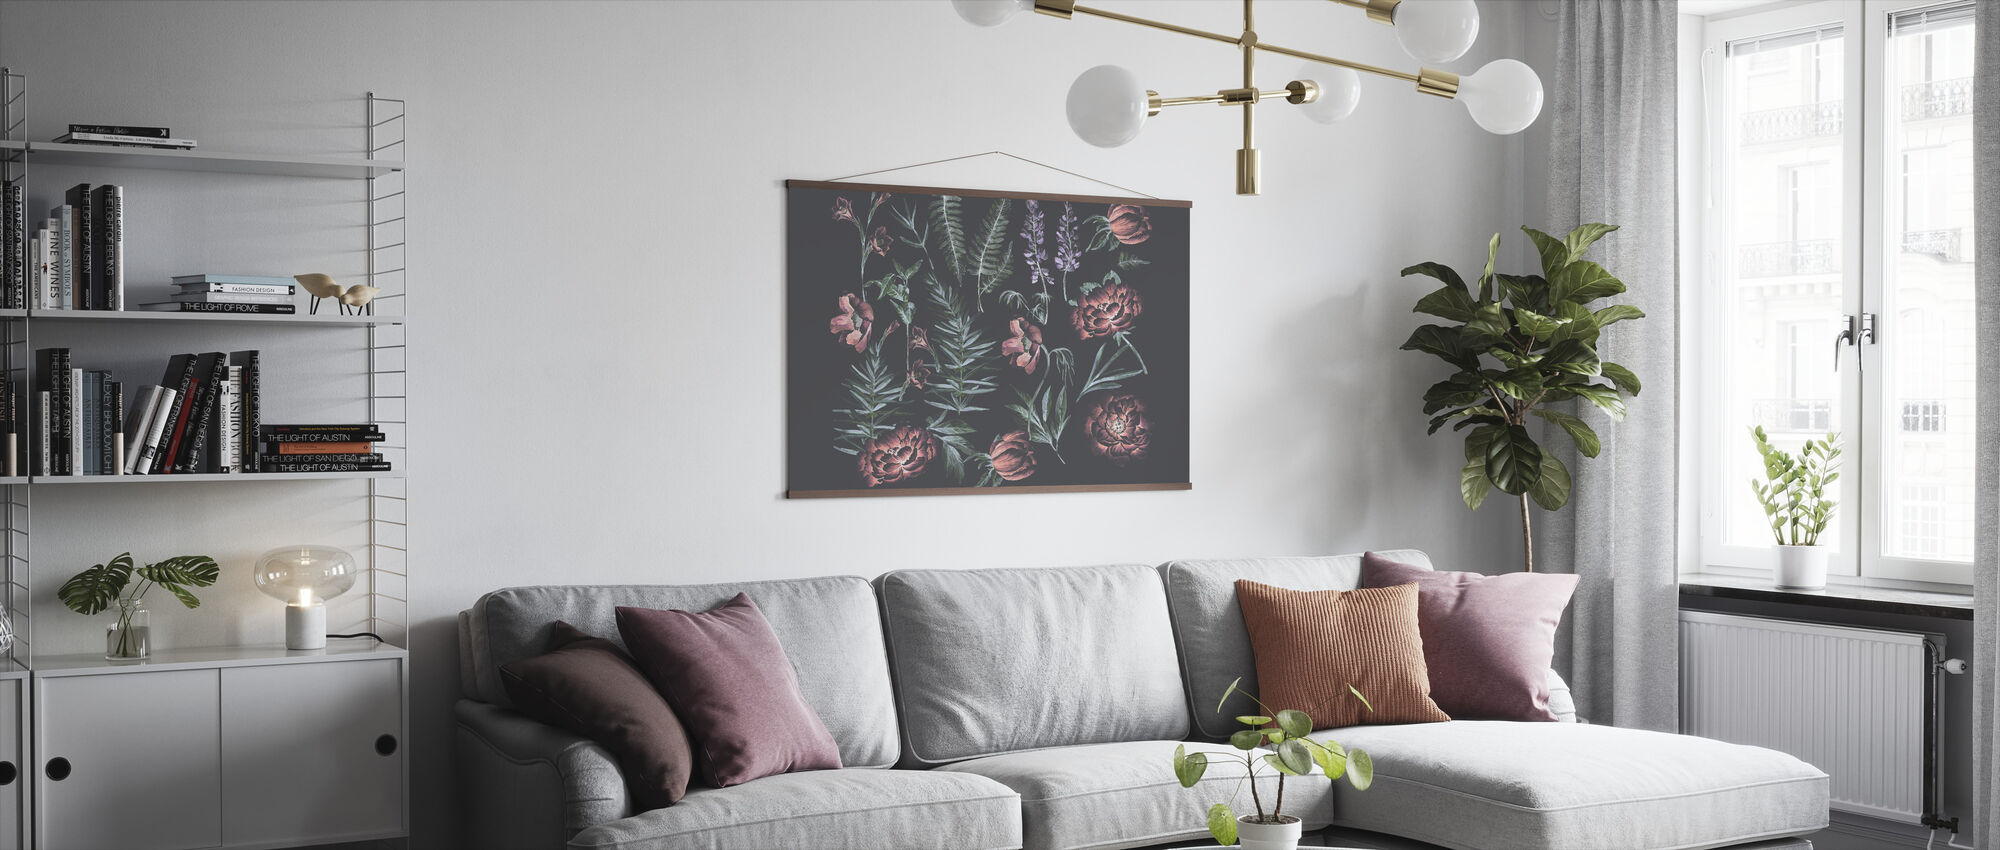 Flower and Plants Harmony - Poster - Living Room